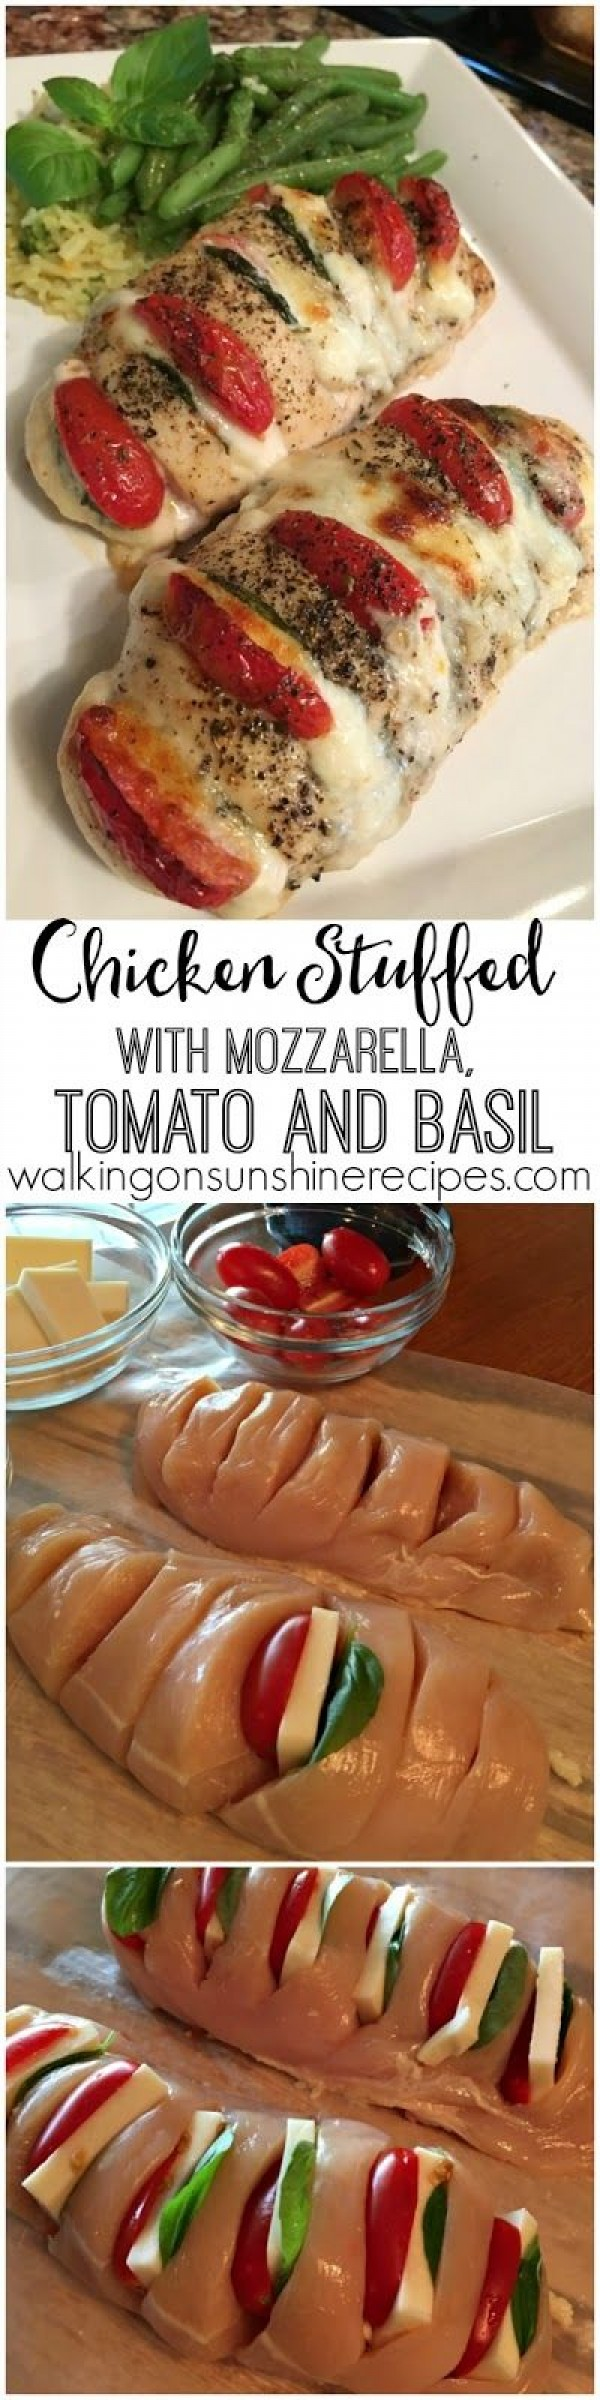 50 Best Chicken Recipes Ever - Check out this recipe for mozzarella tomato and basil stuffed chicken. Yummy! #RecipeIdeas @recipes_to_go